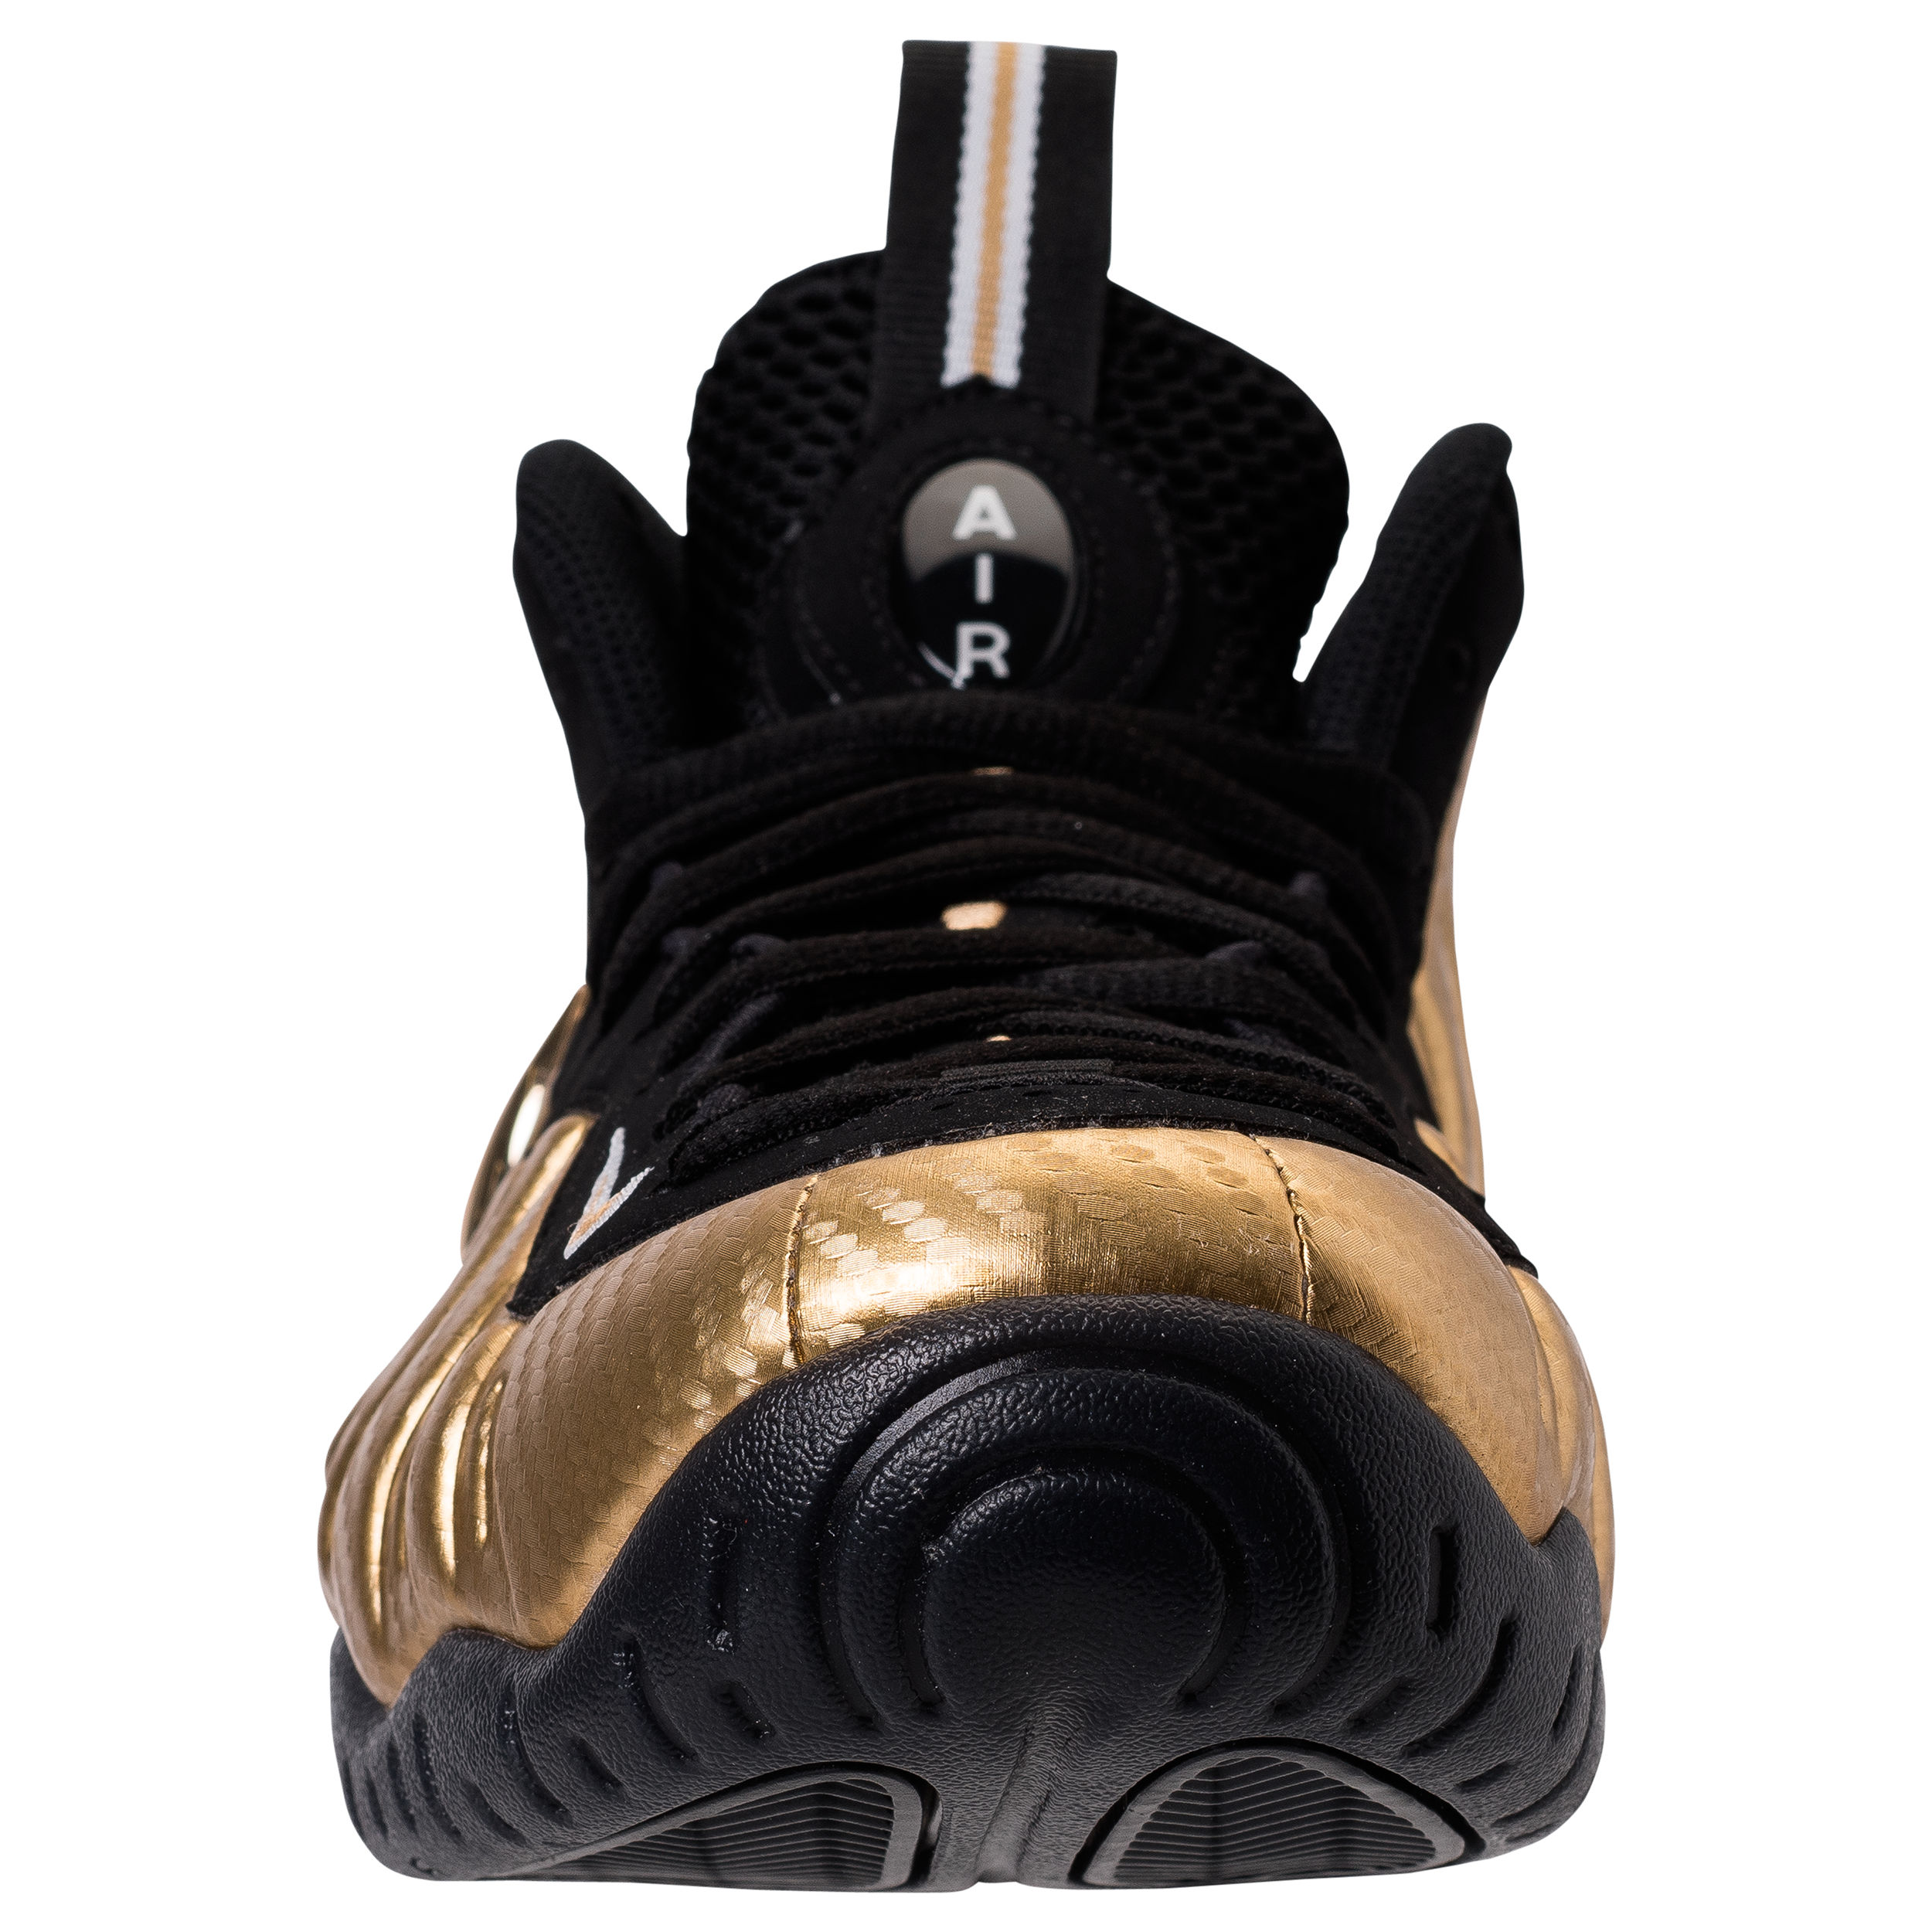 Nike Air Foamposite Pro Men s Basketball Shoes Volt Black ...